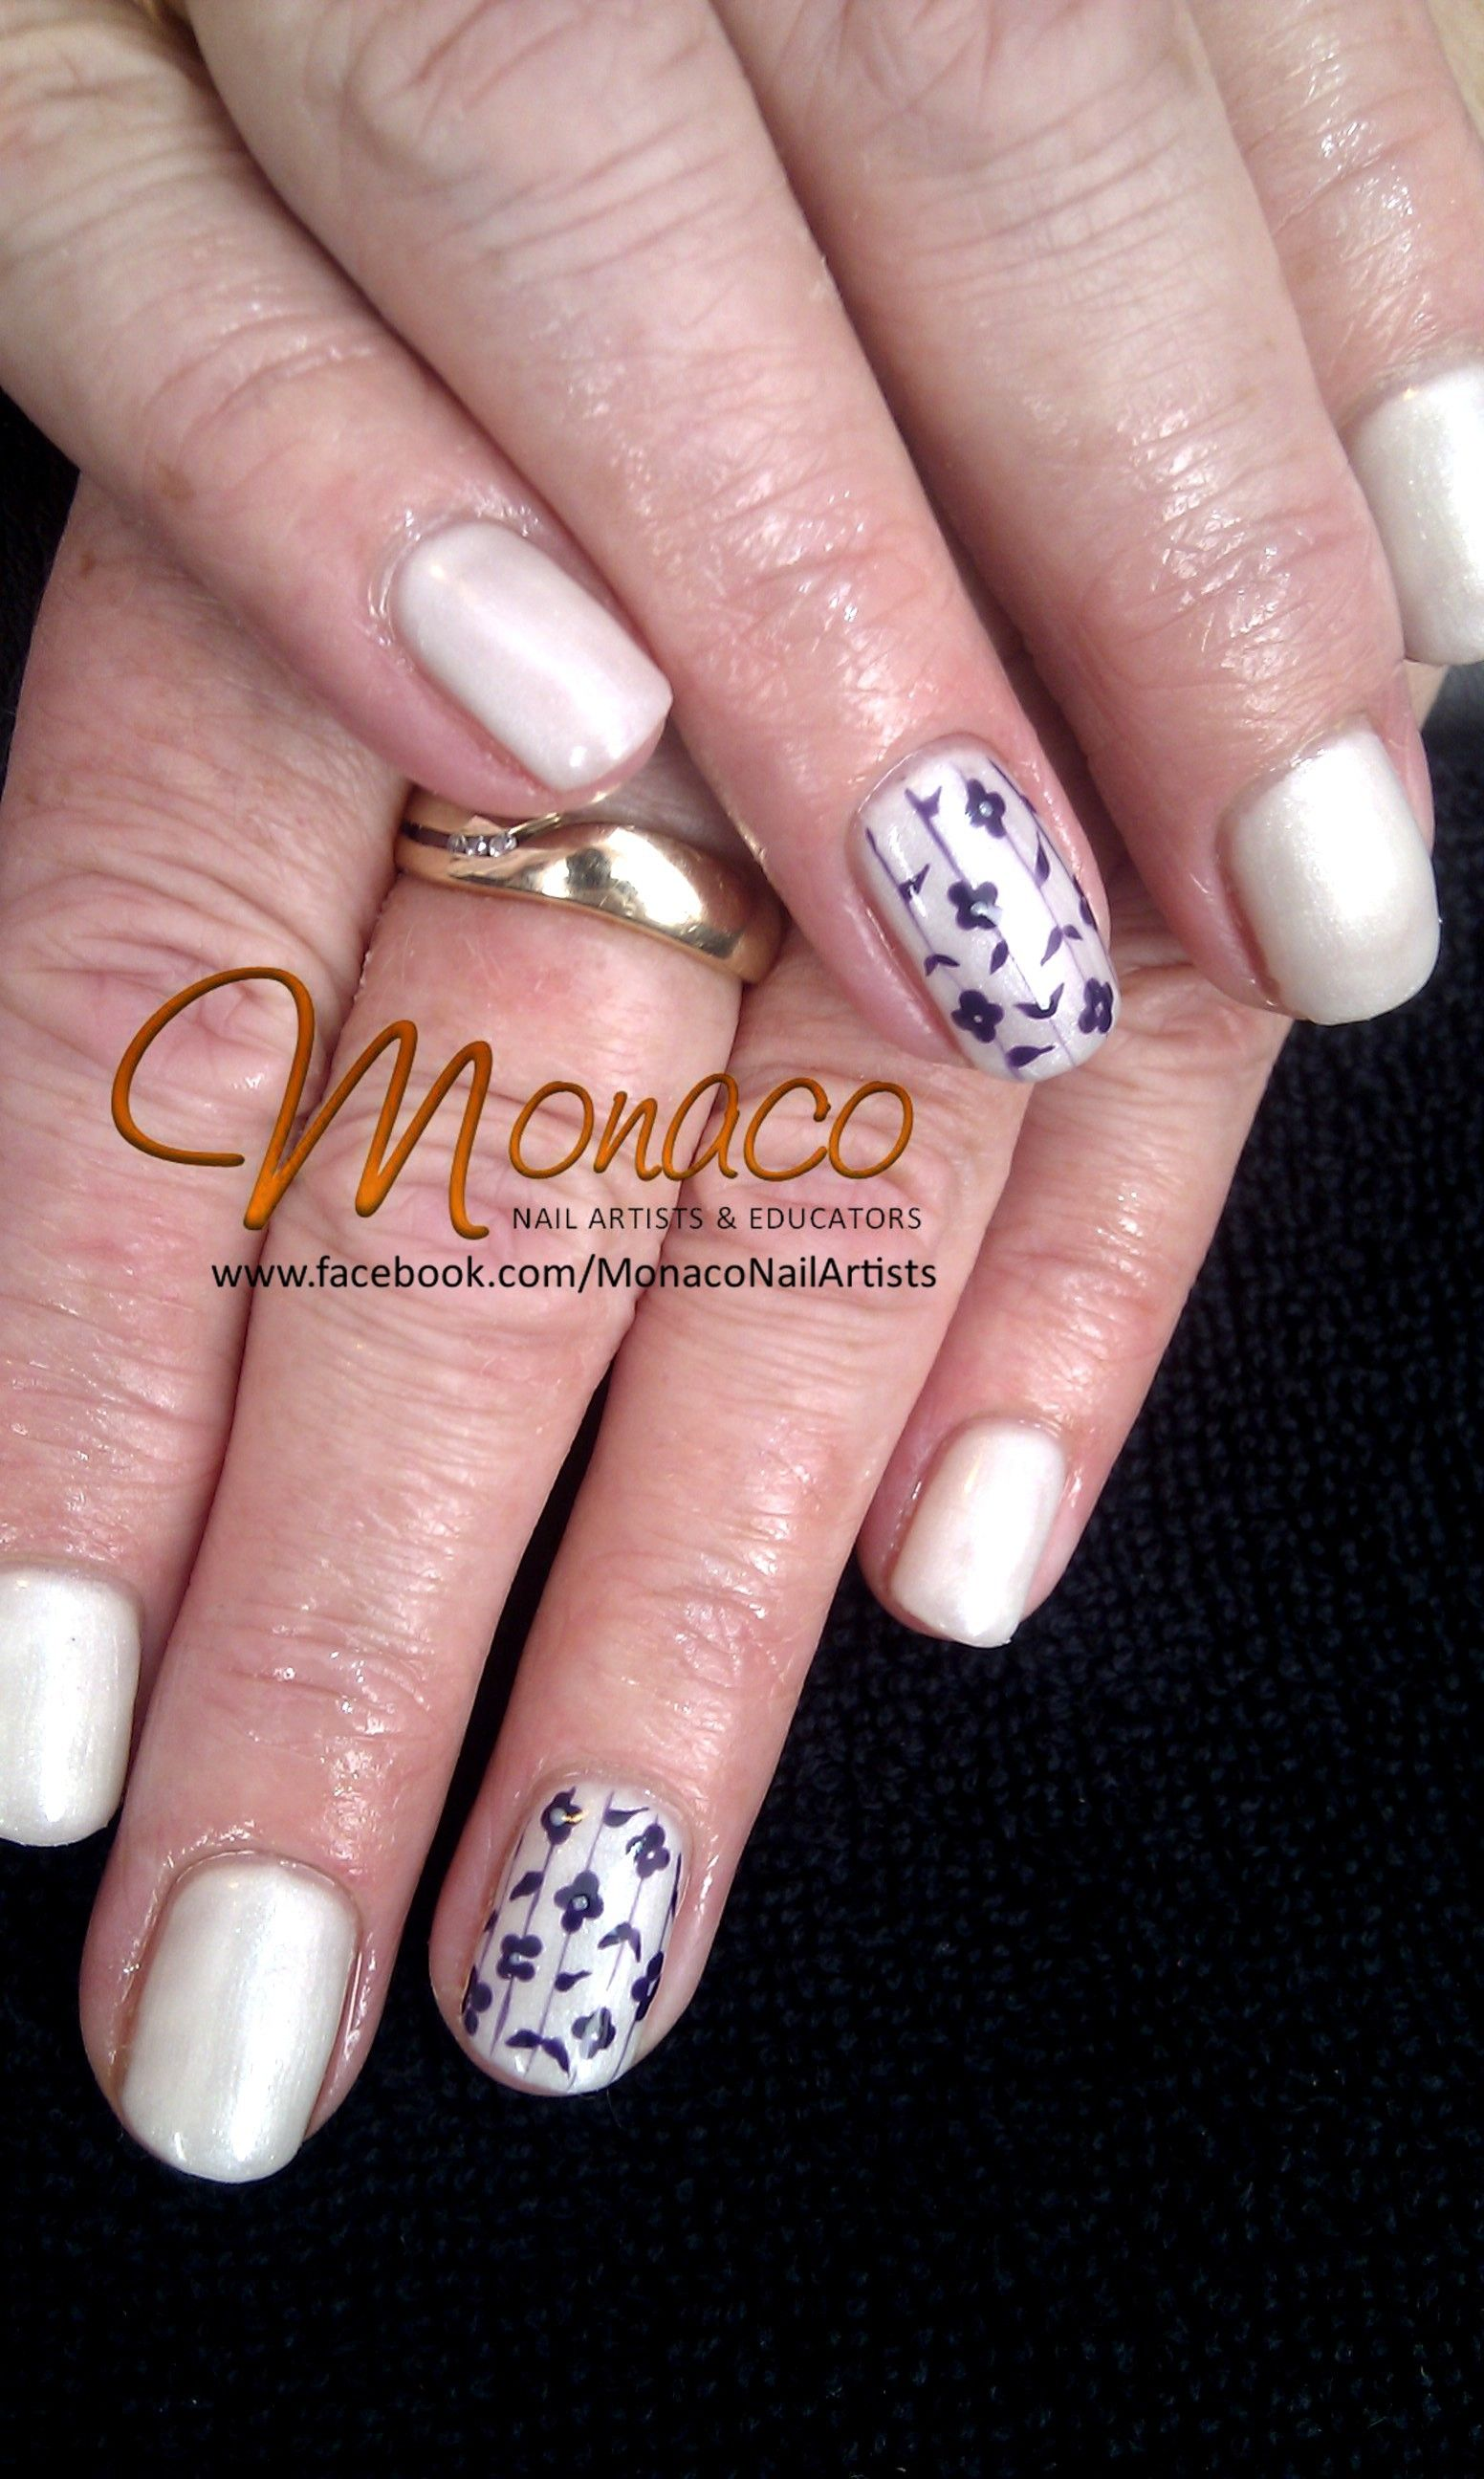 Dainty floral NailArt with Artistic Colour Gloss 50 NZD